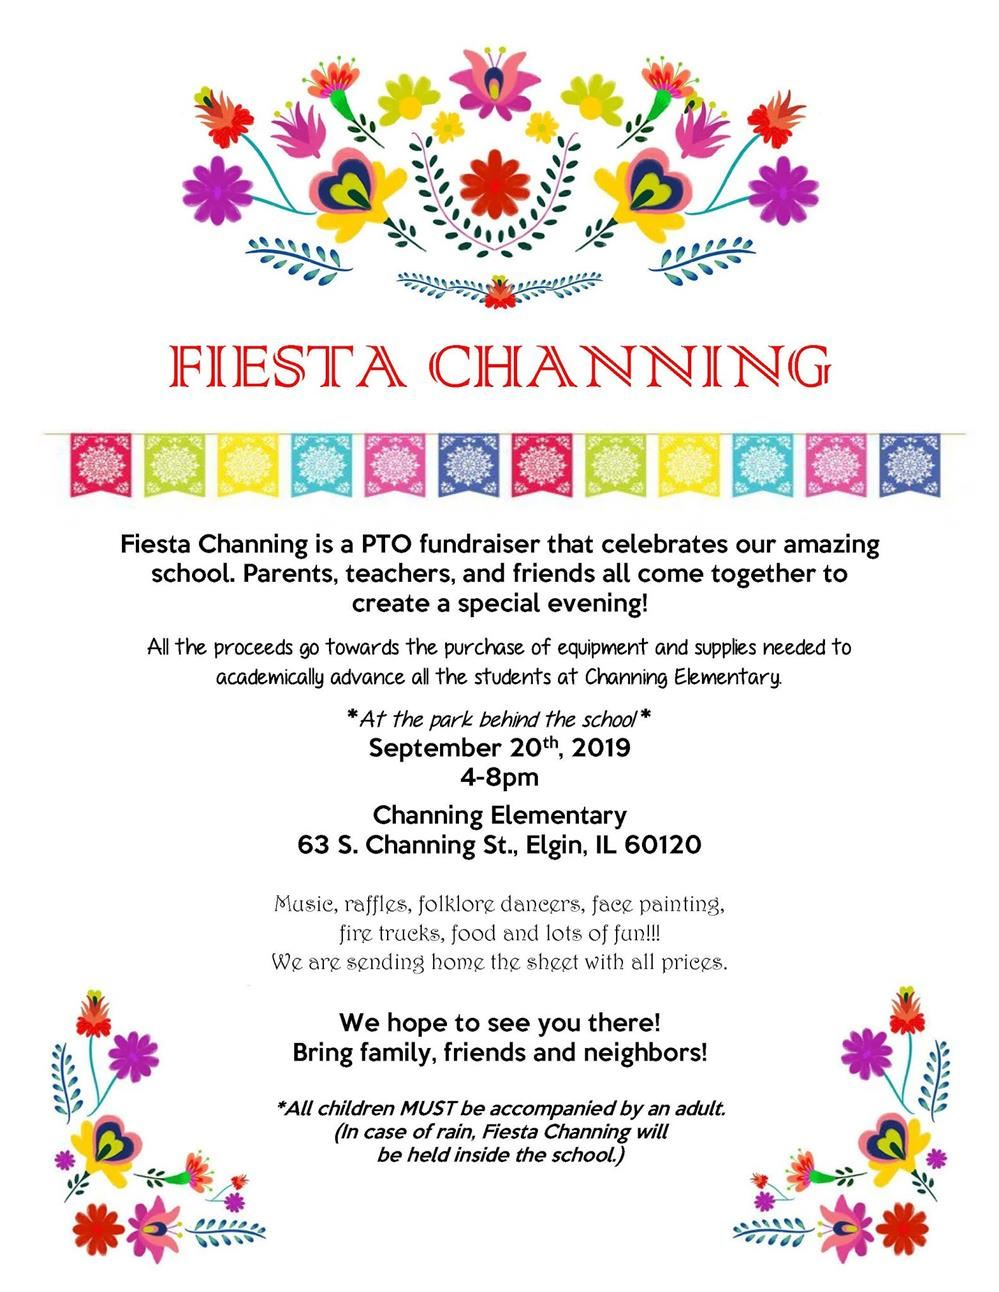 Fiesta Channing Flyer